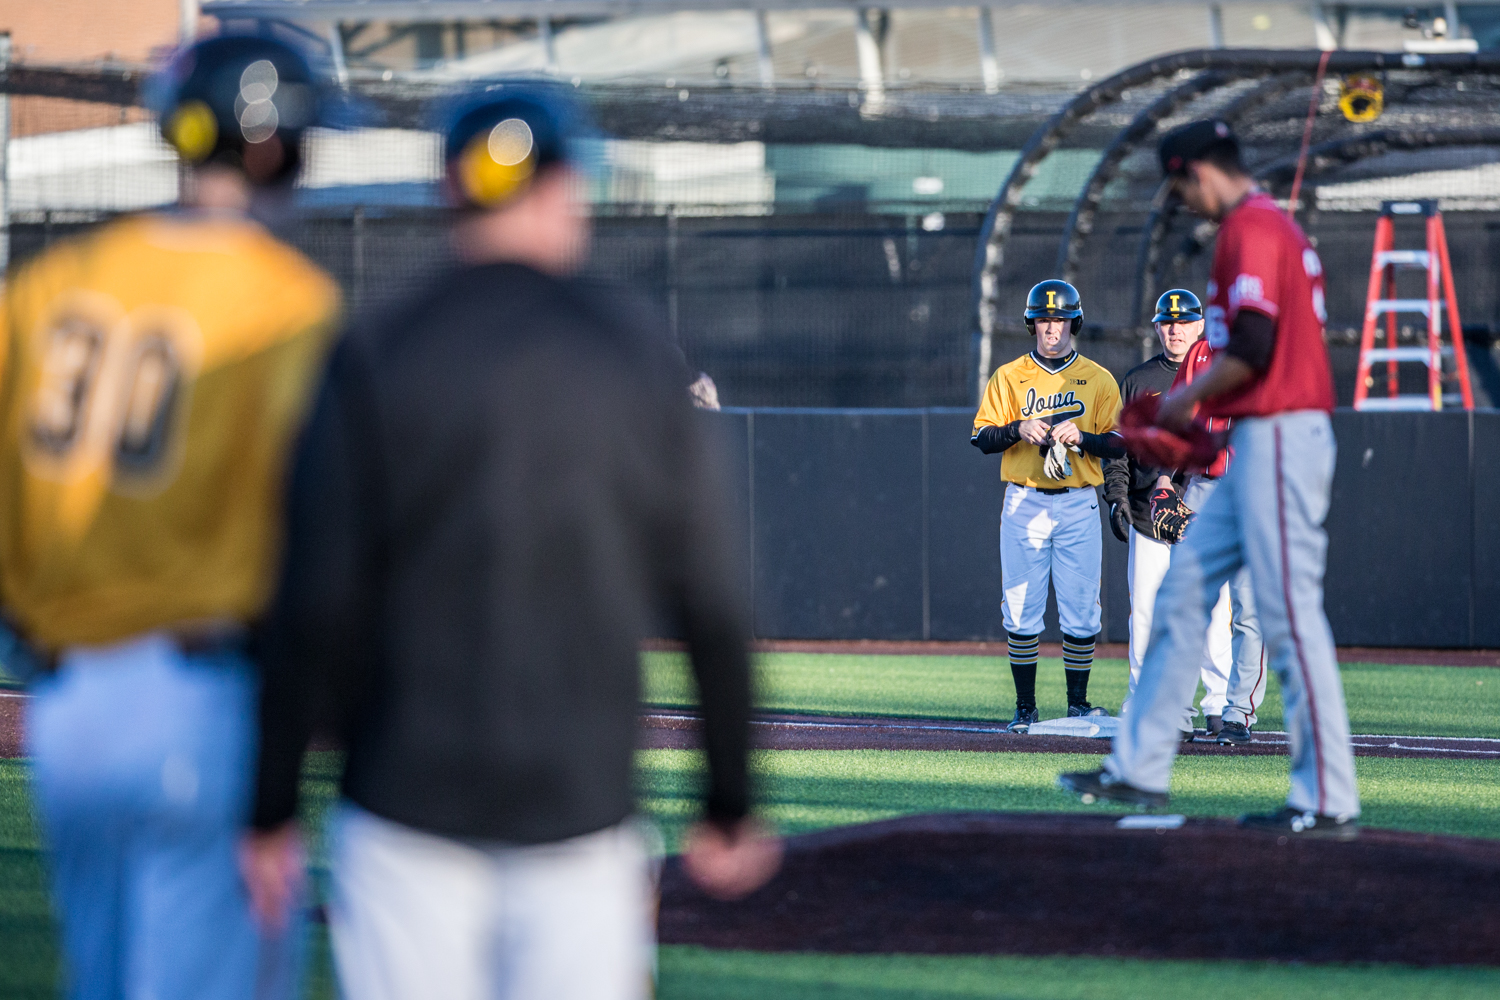 Iowa+outfielder+Justin+Jenkins+stands+on+first+during+the+second+game+of+a+baseball+doubleheader+between+Iowa+and+Cal-State+Northridge+at+Duane+Banks+Field+on+Sunday%2C+March+17%2C+2019.+The+Hawkeyes+took+the+series+by+defeating+the+Matadors%2C+3-1.